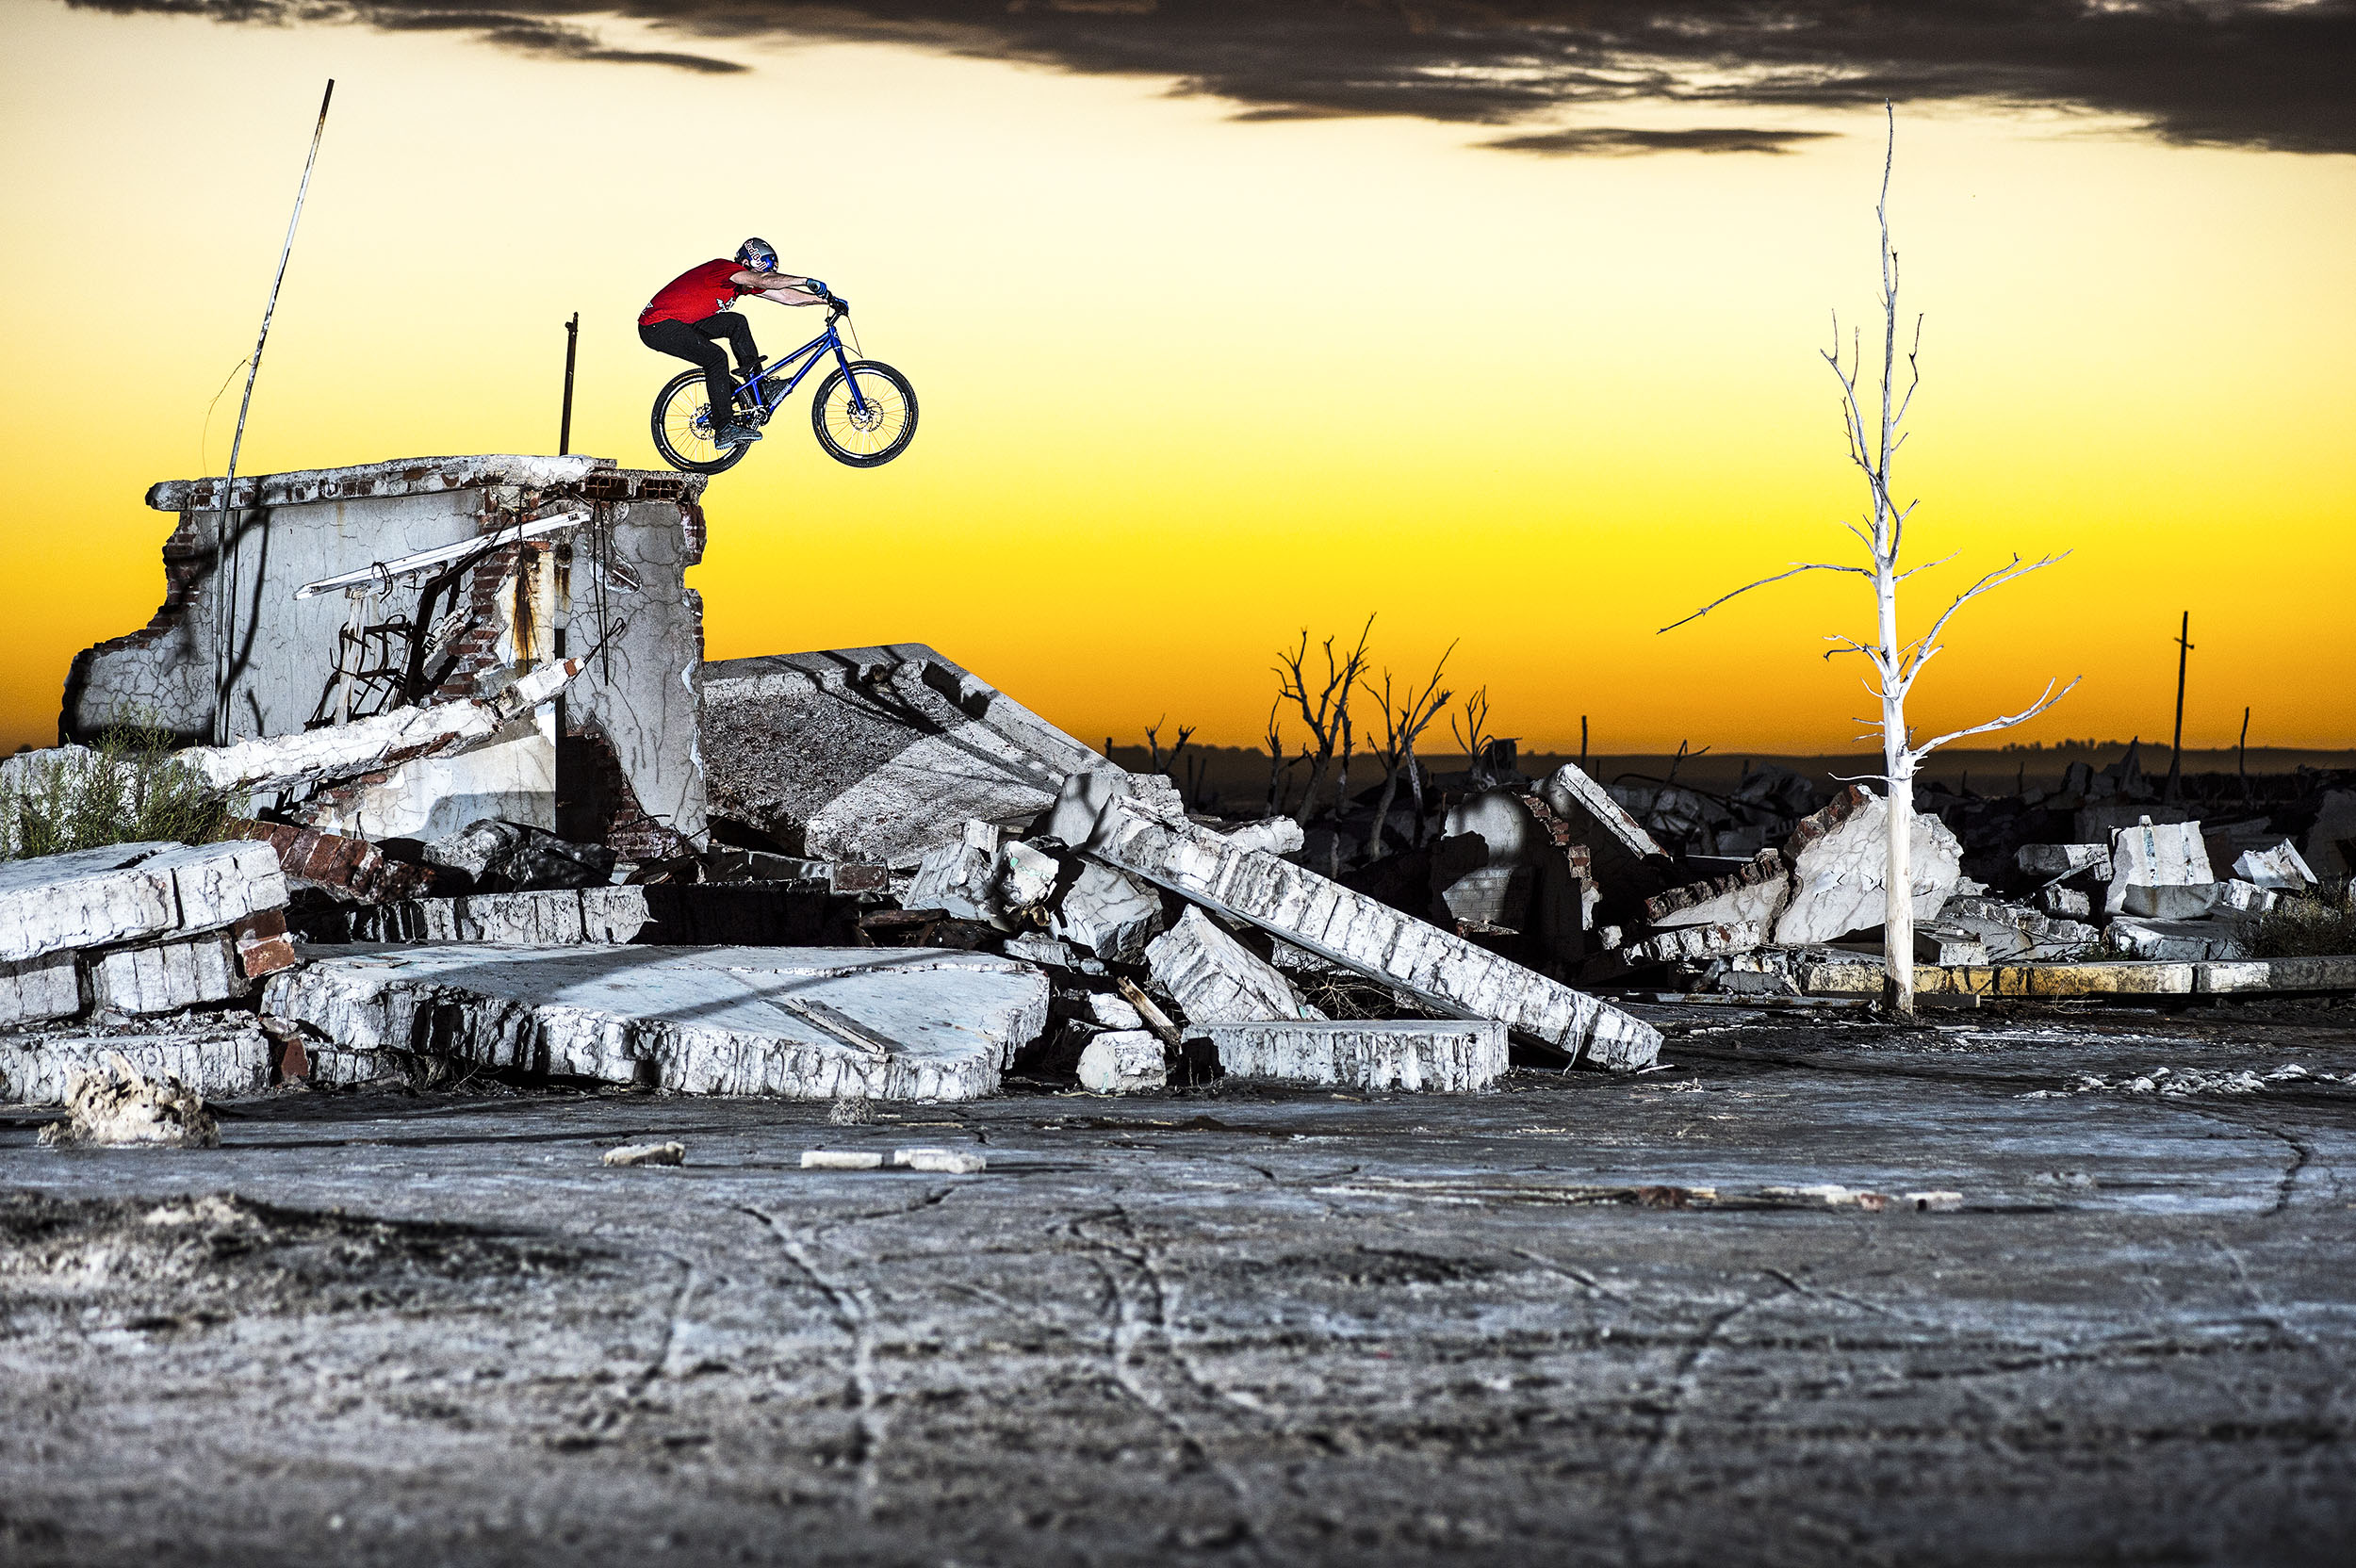 Danny MacAskill for Red Bull - Epecuen, Argentina